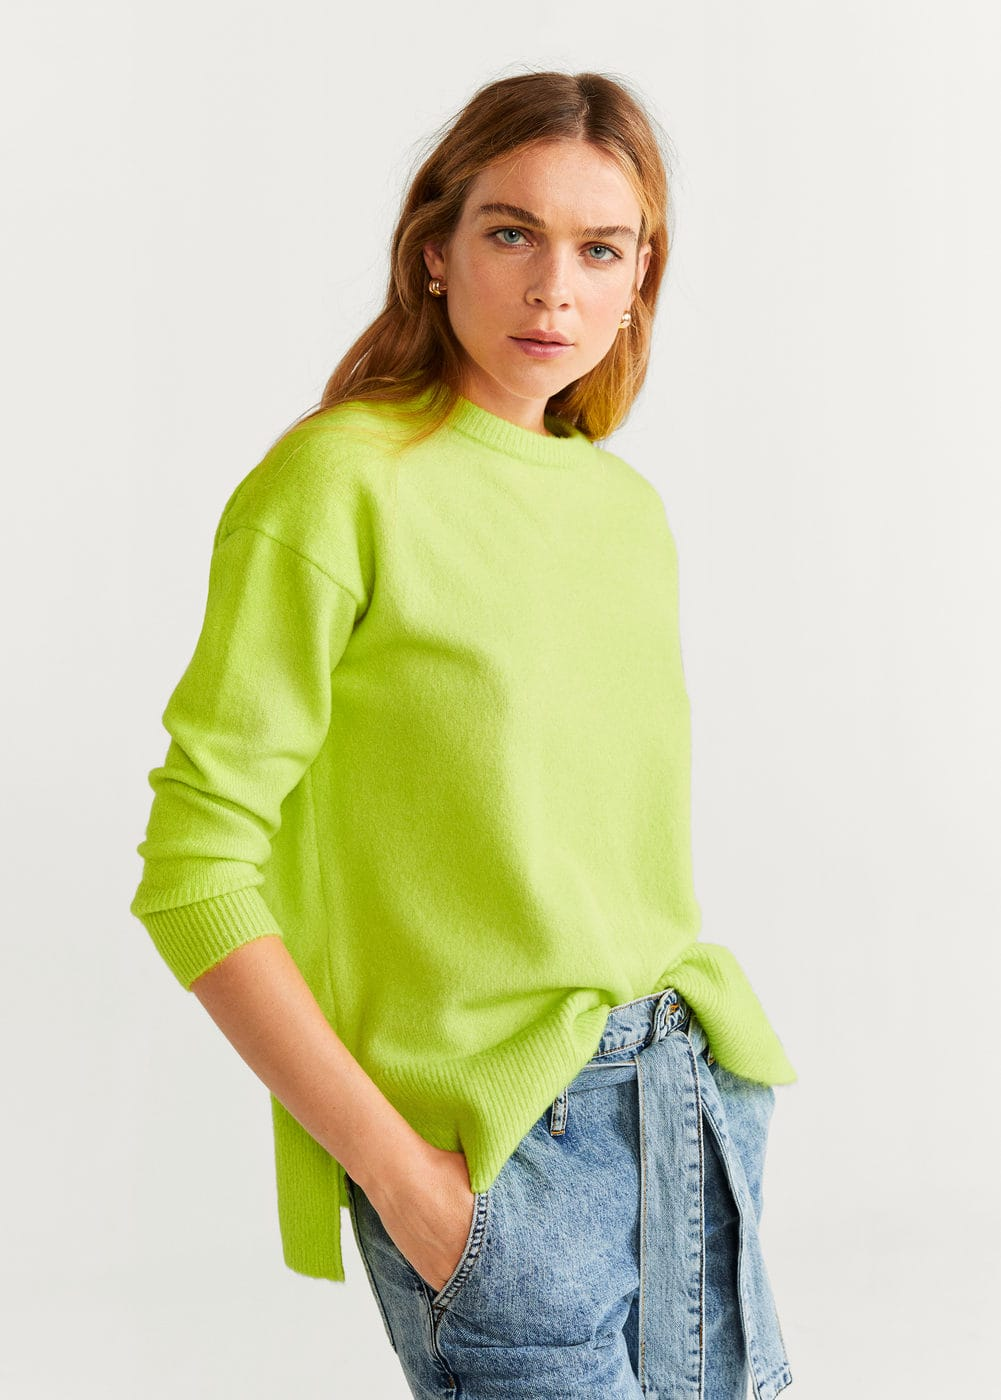 m-bright:jersey detalle canale